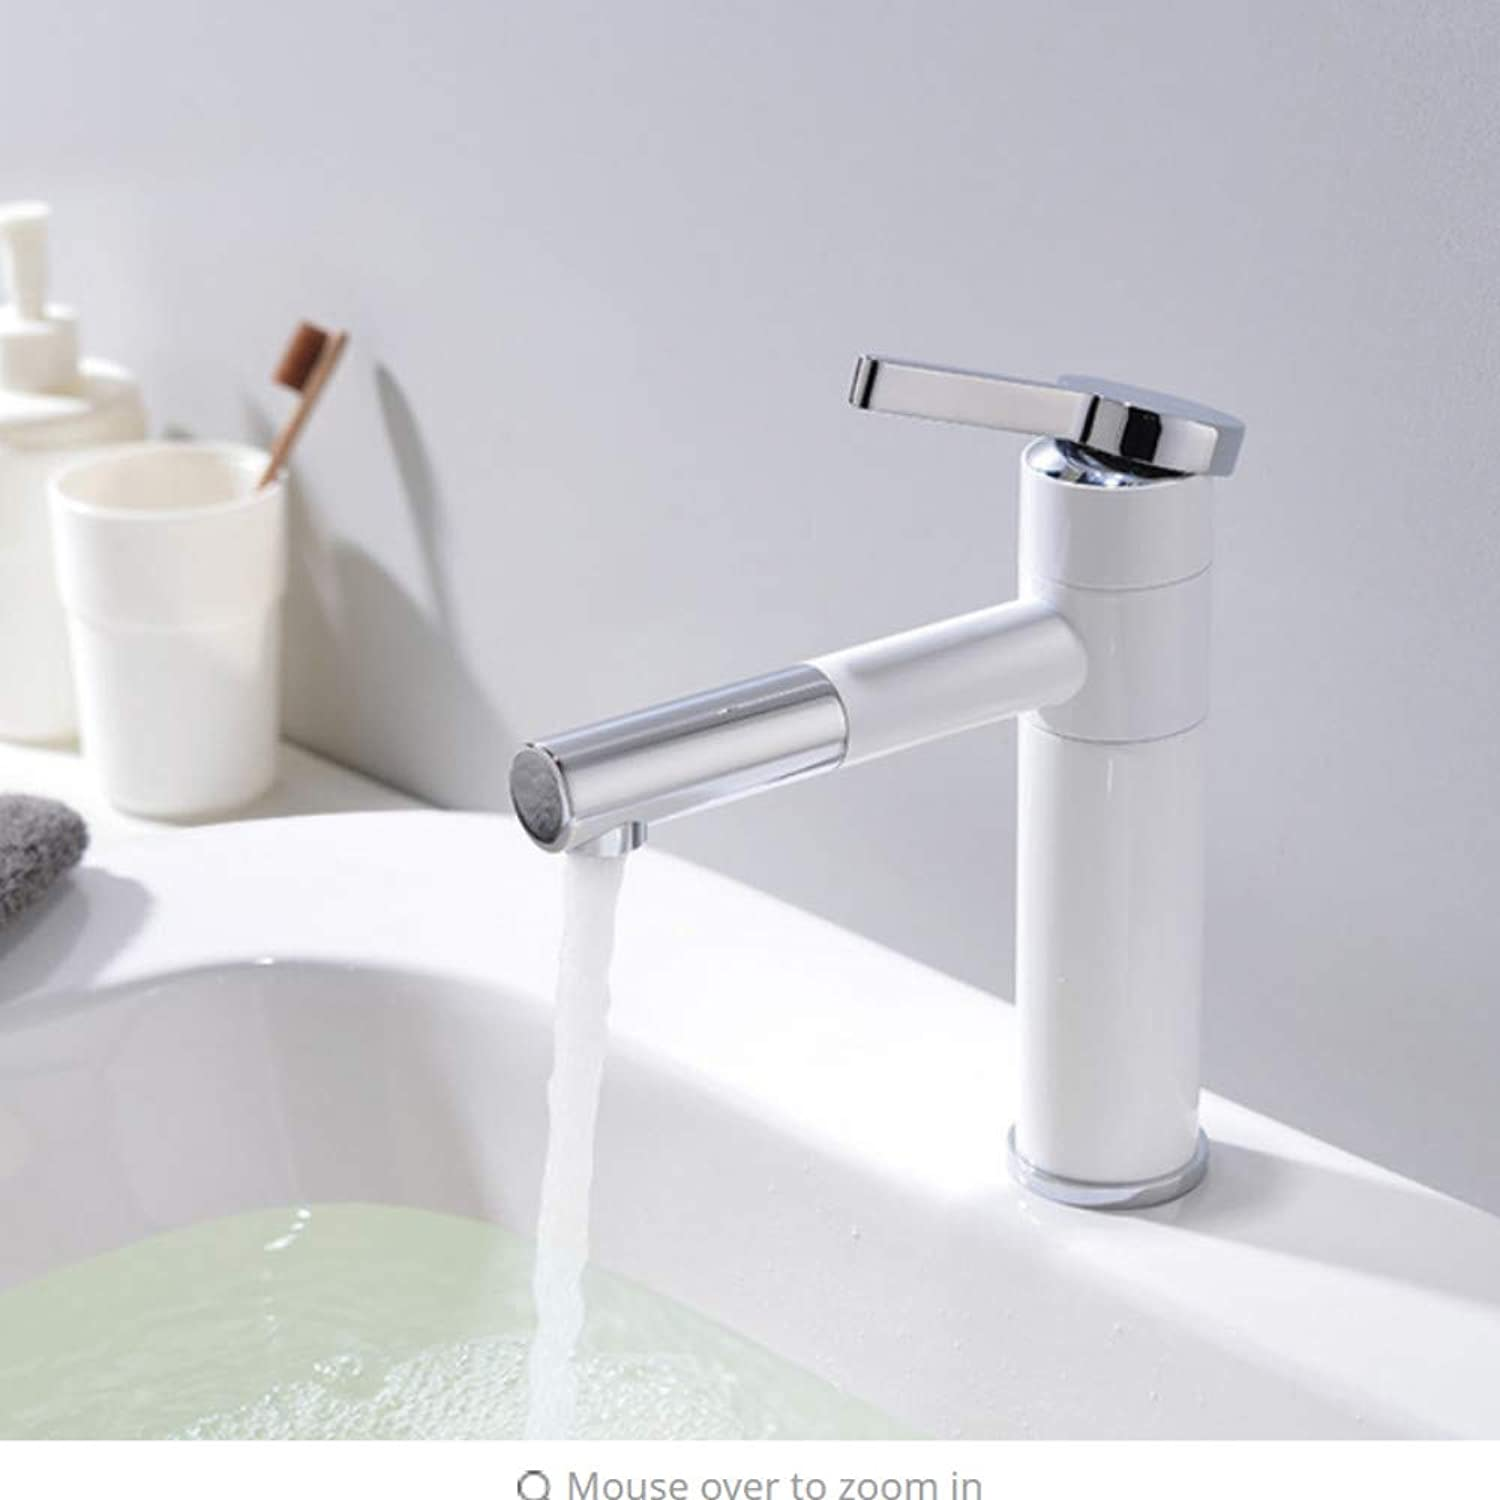 Lddpl Basin Faucets Solid Brass Chrome Modern Bathroom Sink Faucet Single Handle Washbasin Hot Cold Mixer Water Tap G1016 G1019